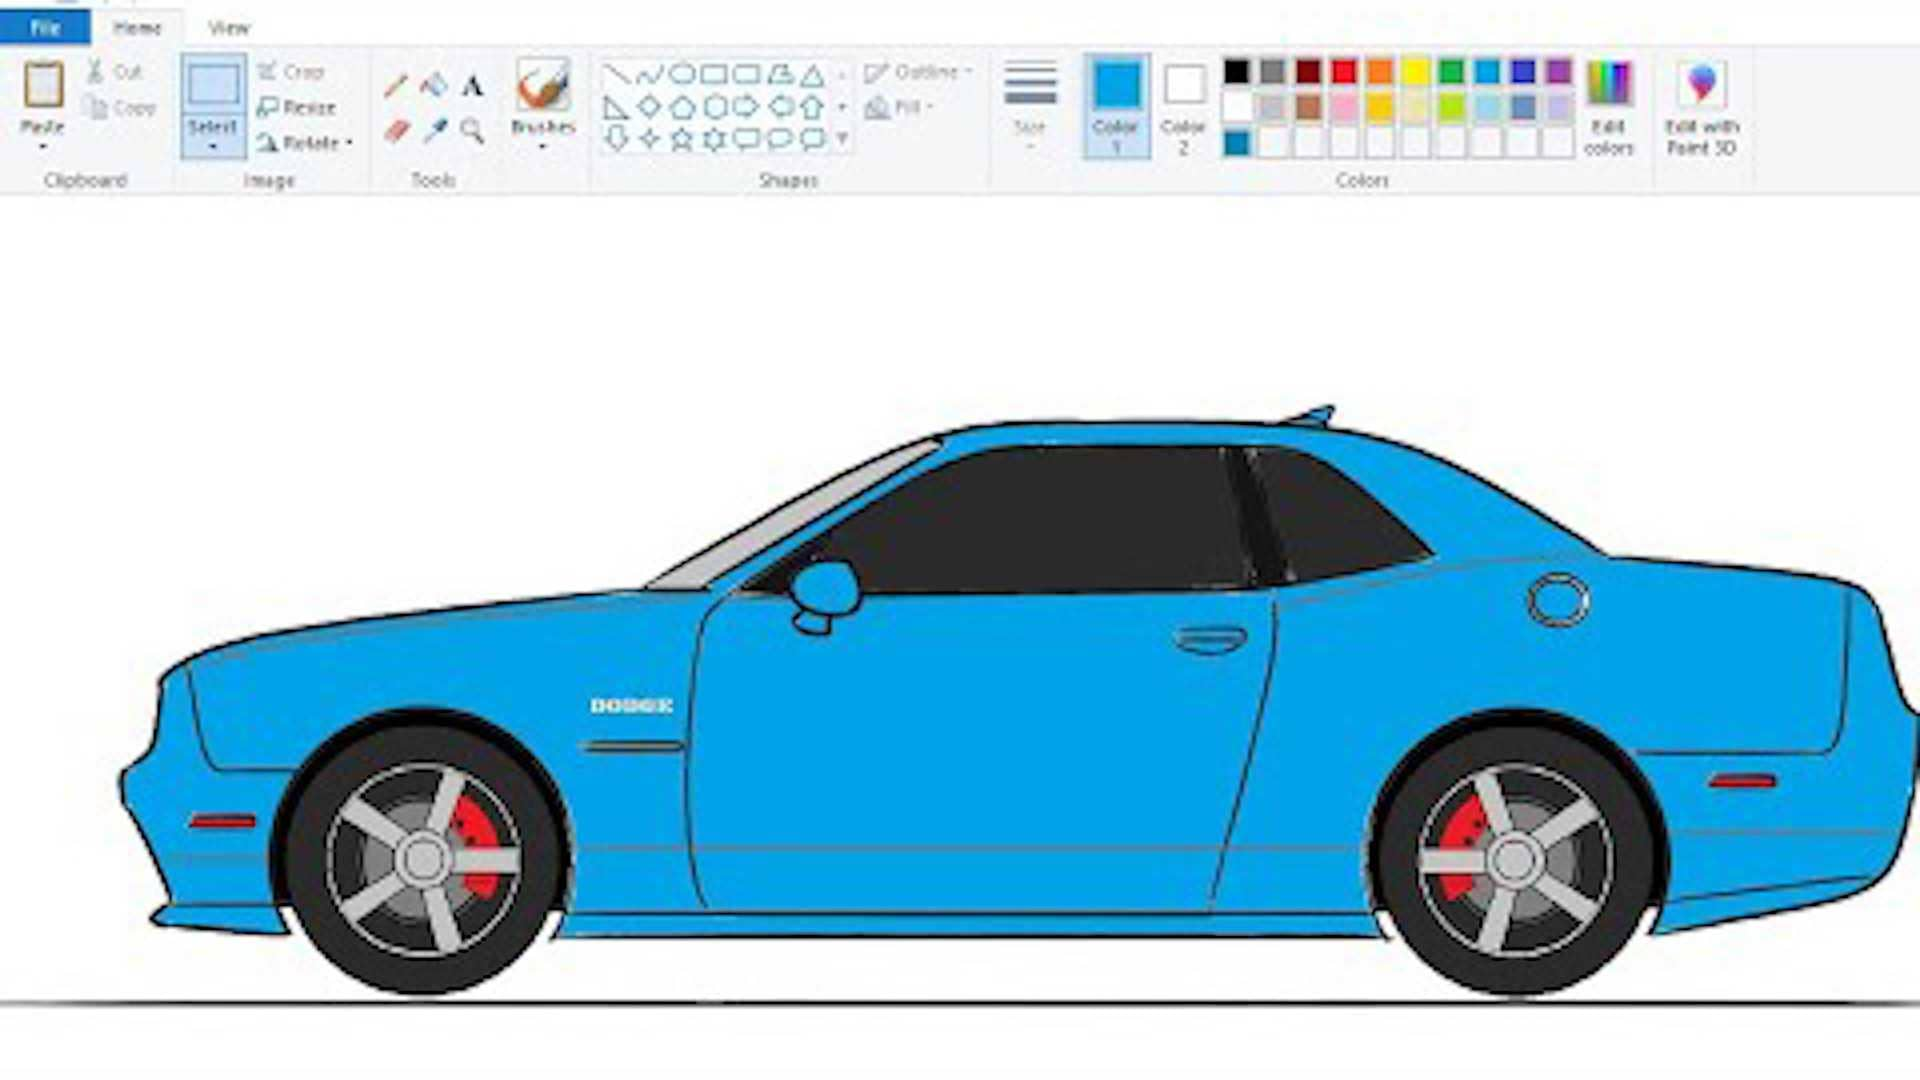 beingnandish-s-cars-drawn-in-microsoft-paintc